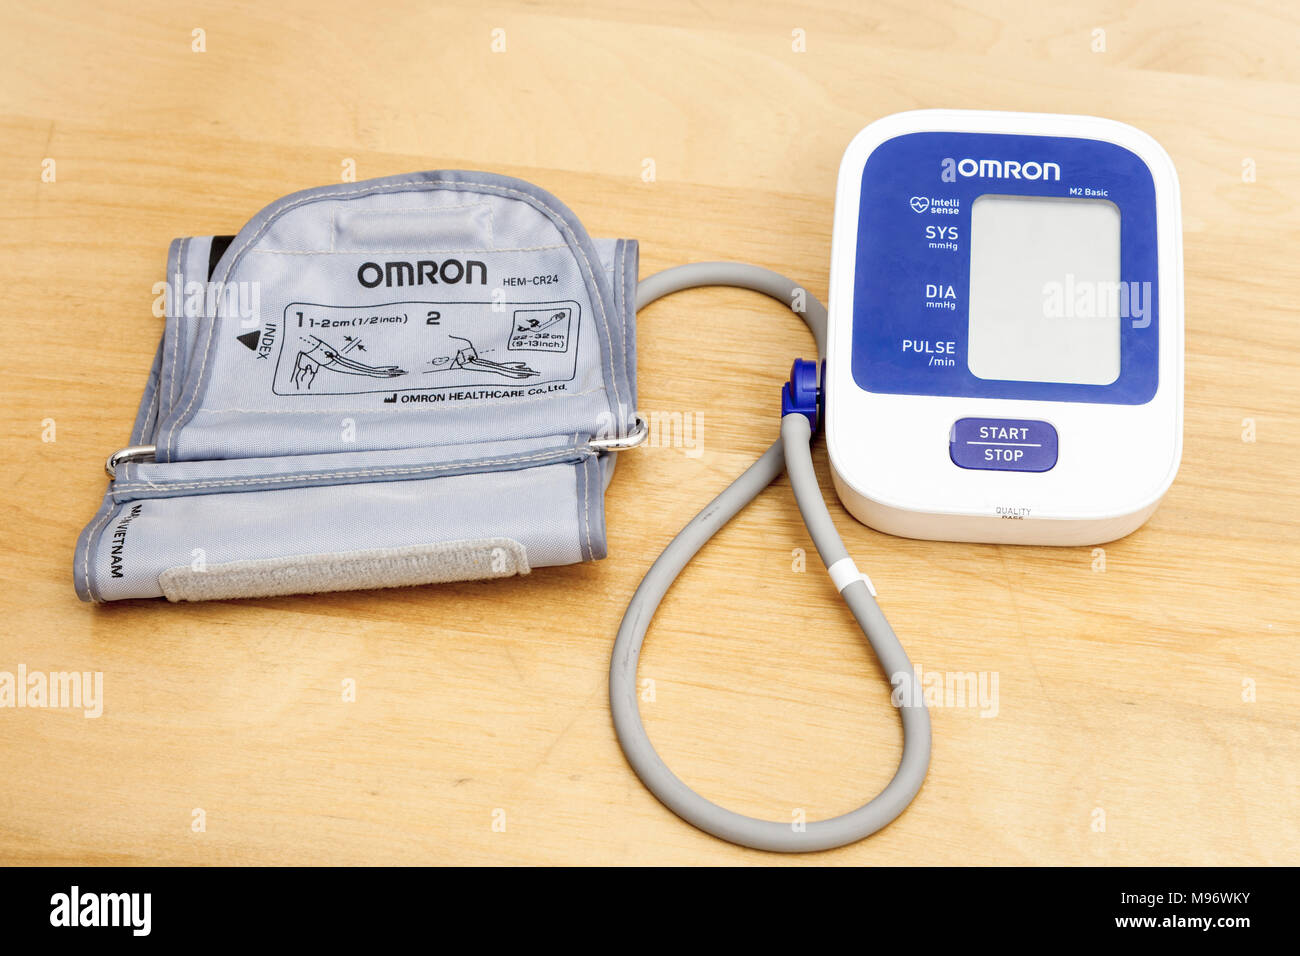 Omron blood pressure monitor - Stock Image